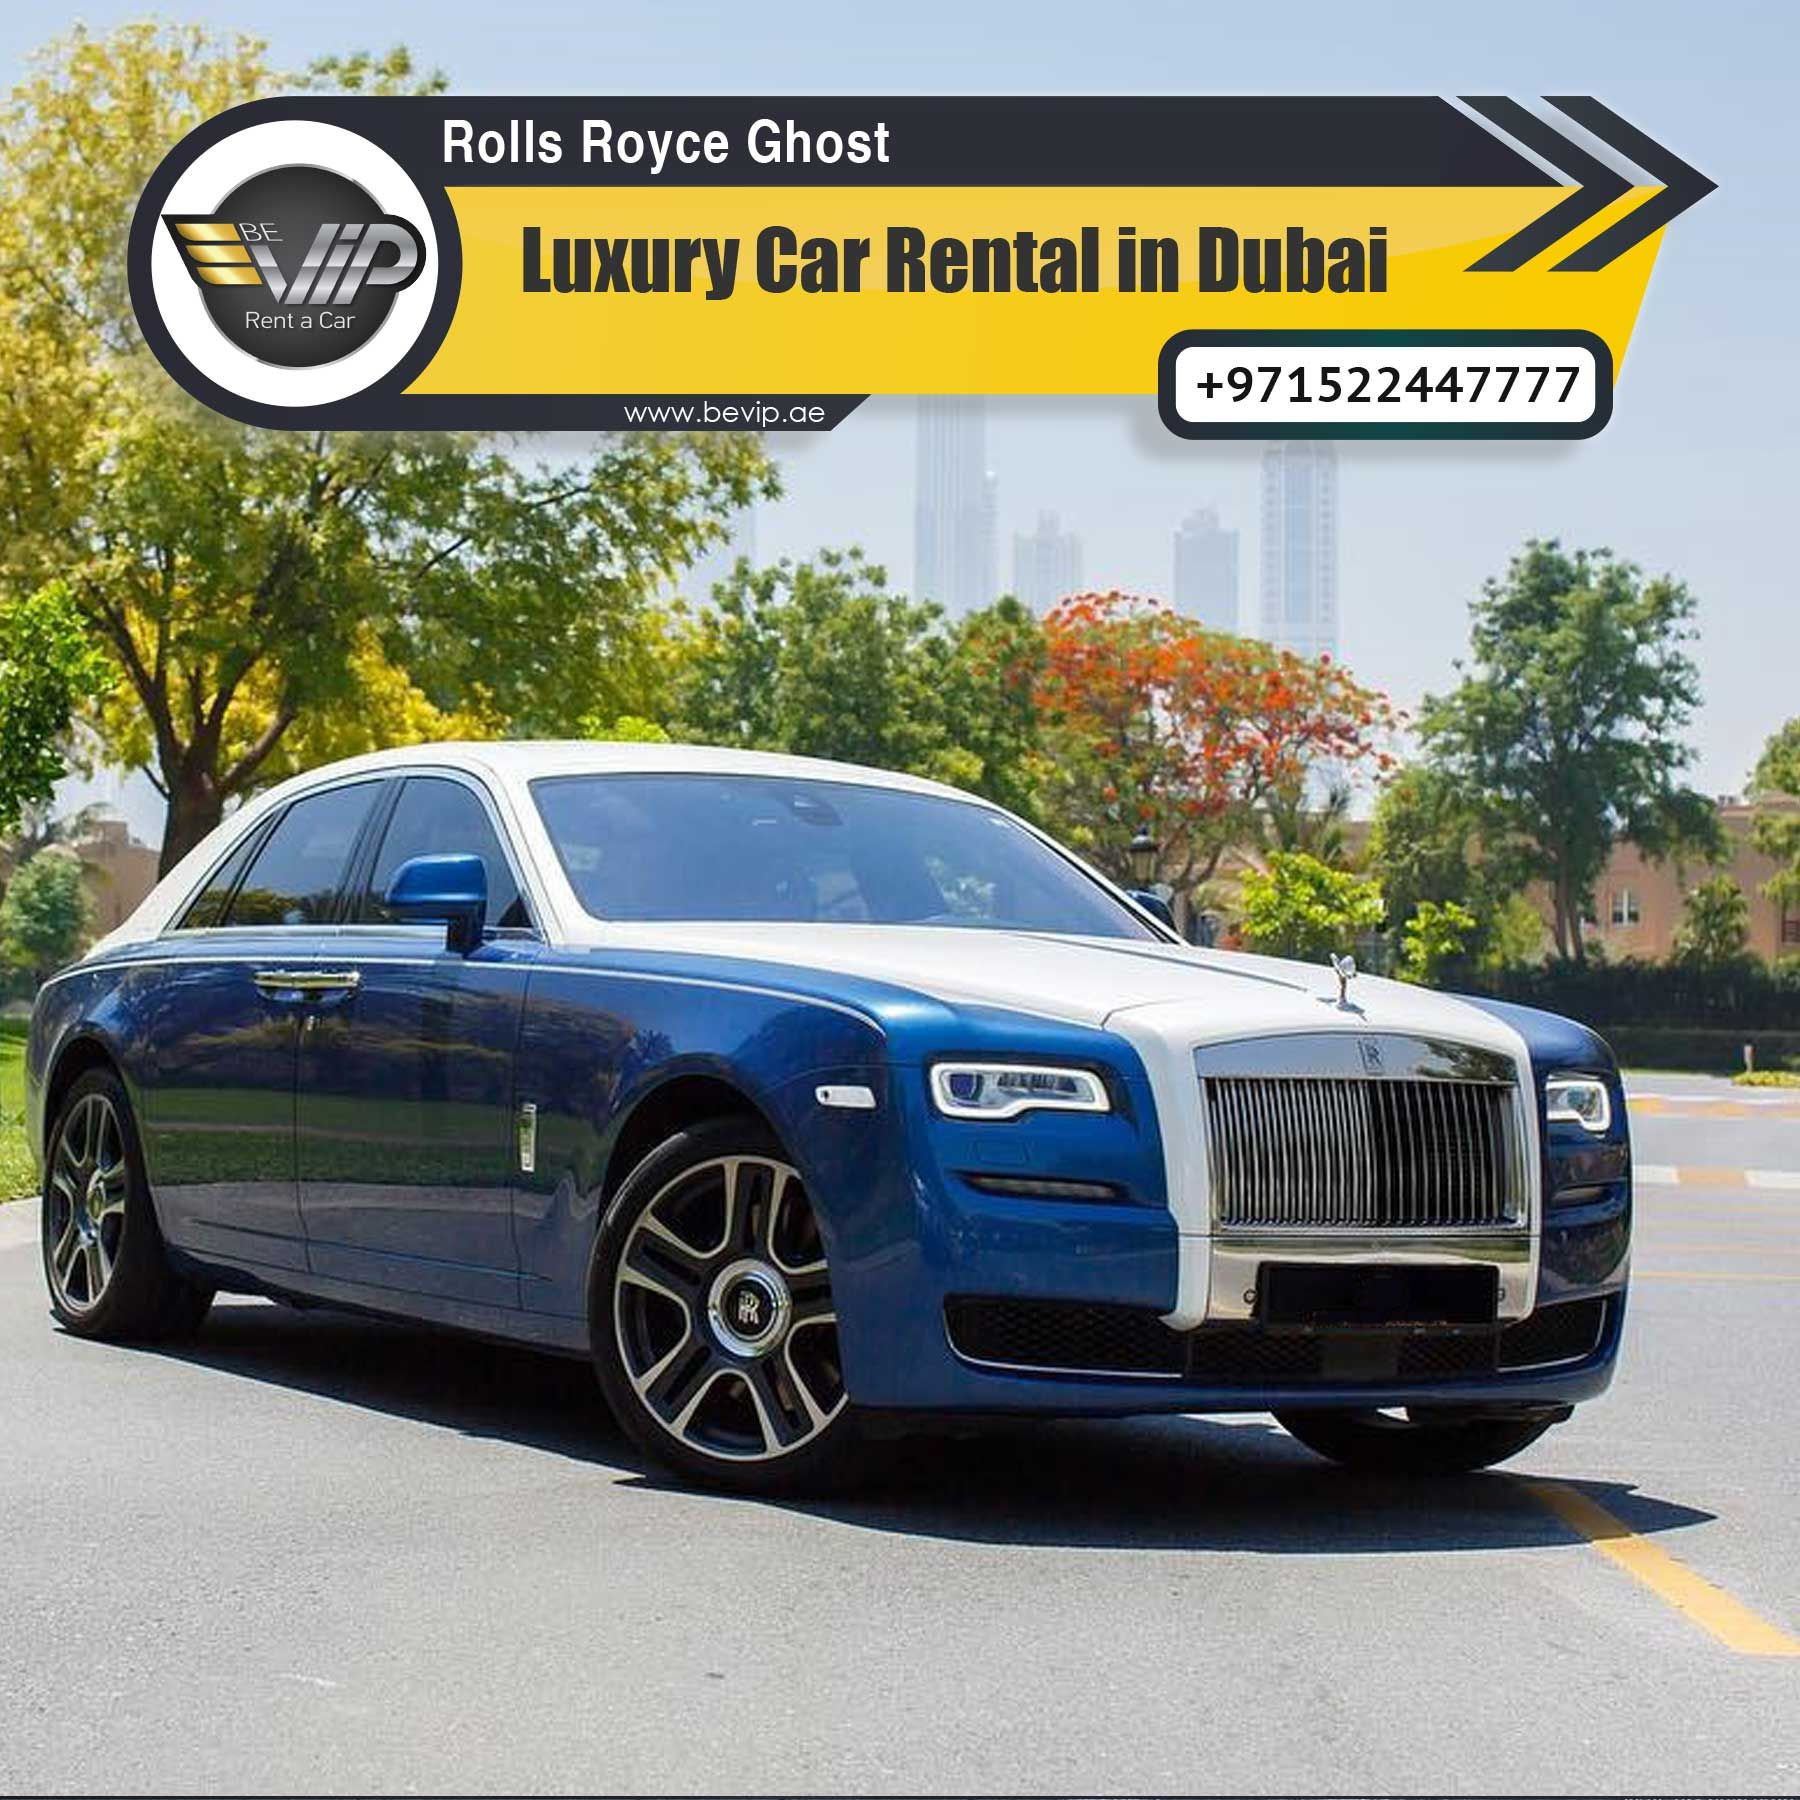 Rolls Royce Ghost For Rent Dubai Luxury Car Rental Rolls Royce Luxury Cars